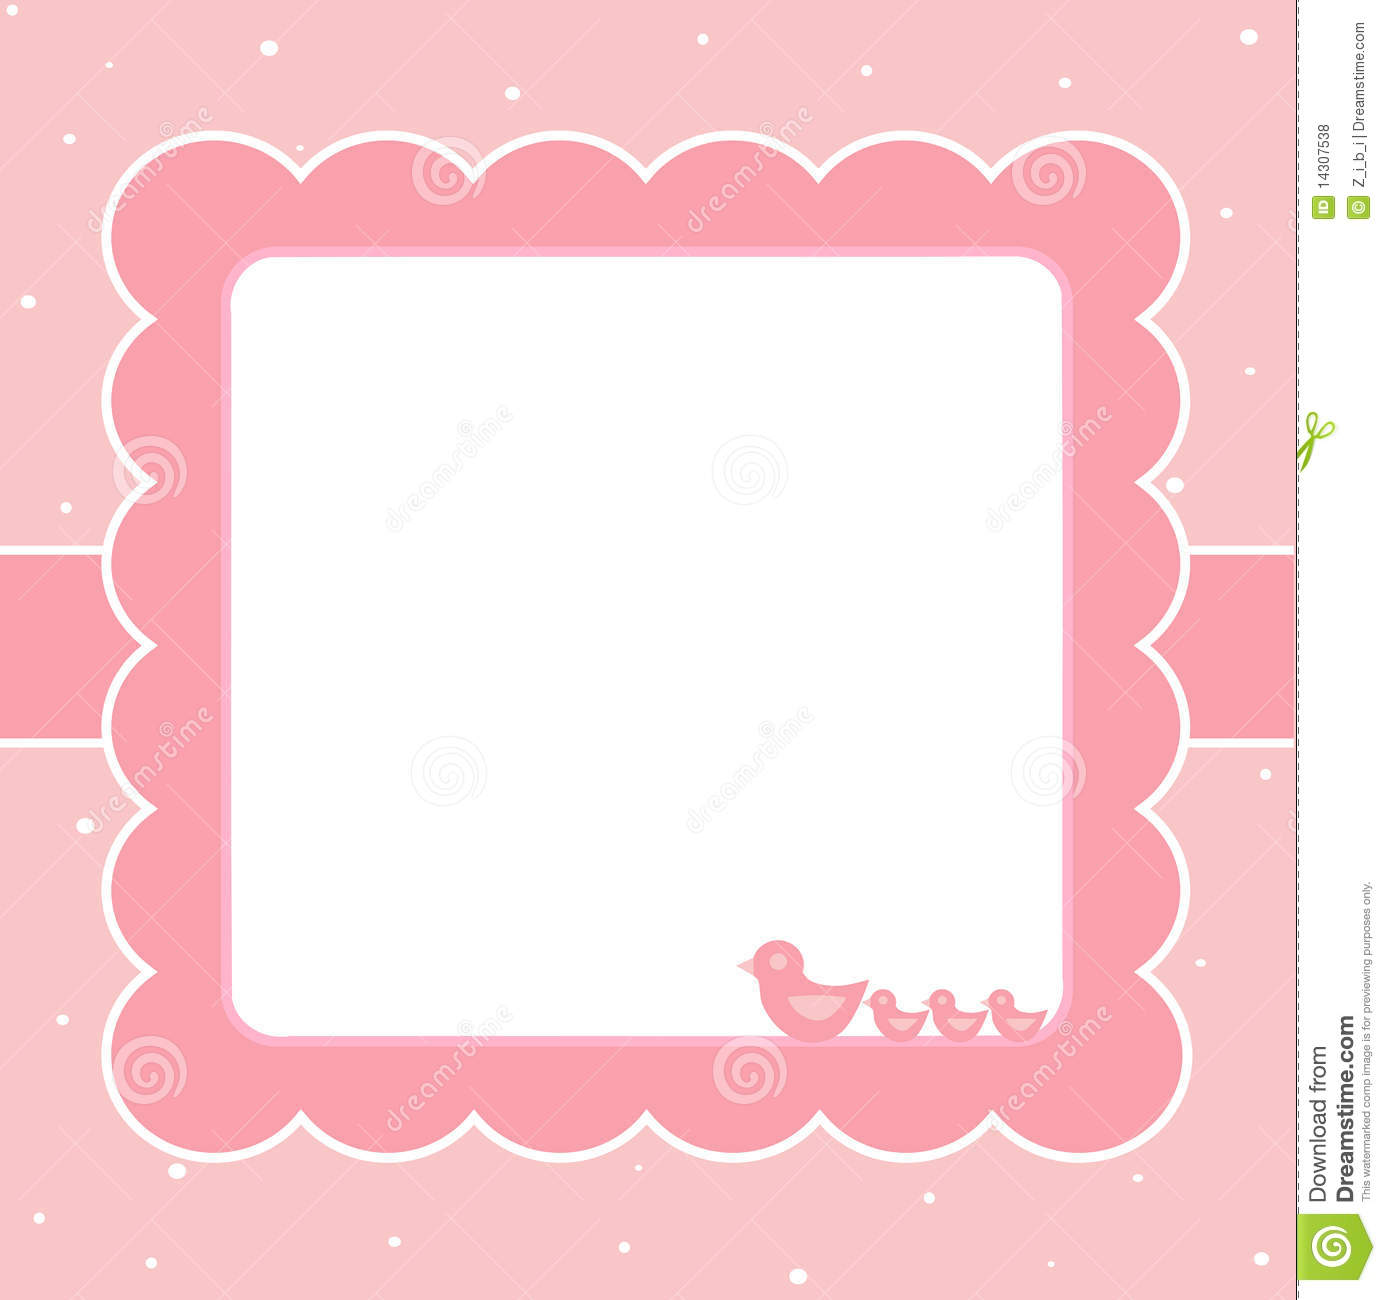 Pink baby card stock vector. Image of born, message, celebration - 14307538